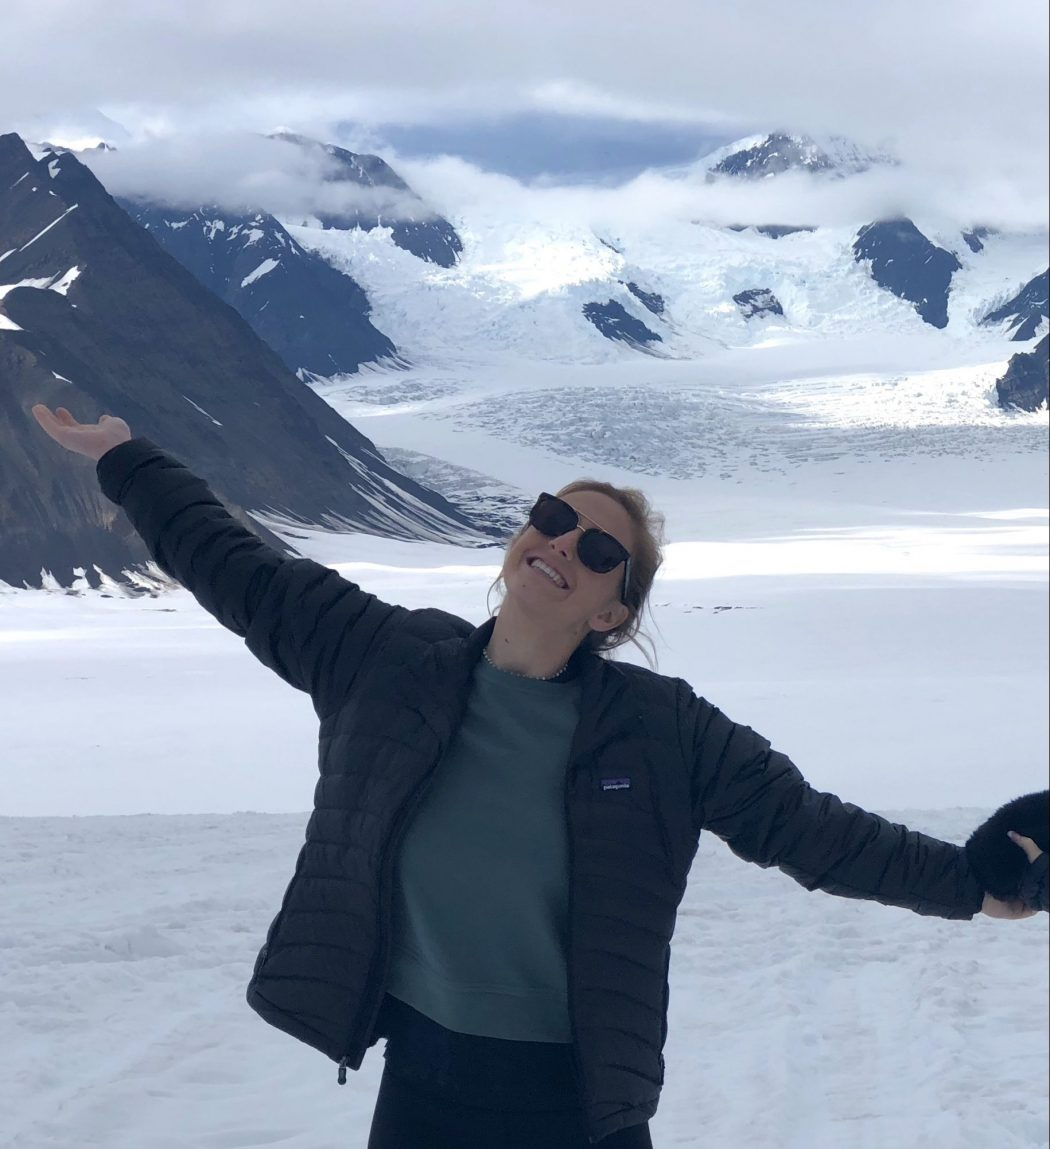 Mackenzie smiling with arms outstretched, snowy mountains in the background